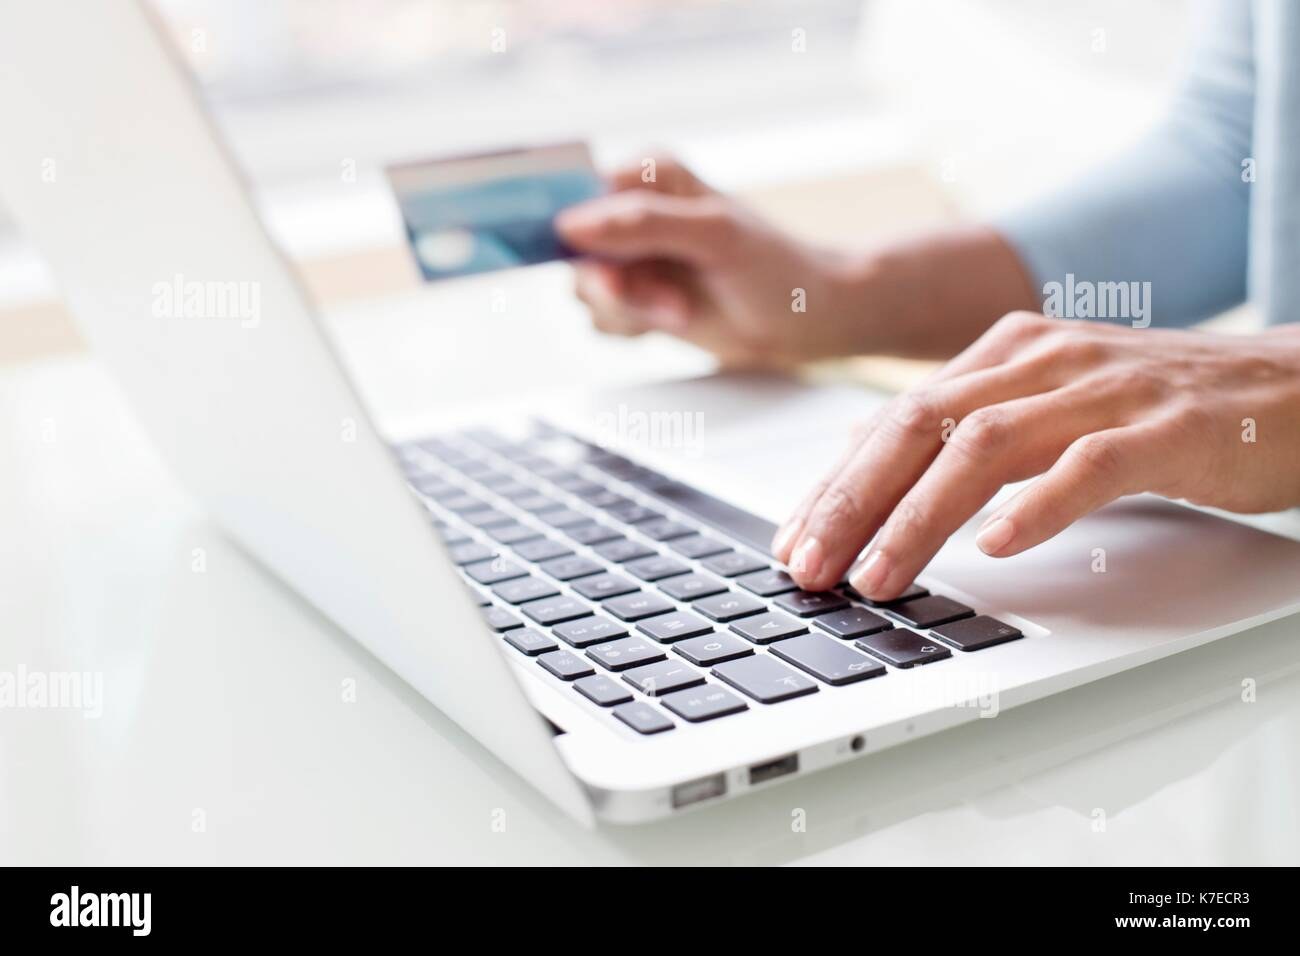 Woman using credit card and laptop. - Stock Image